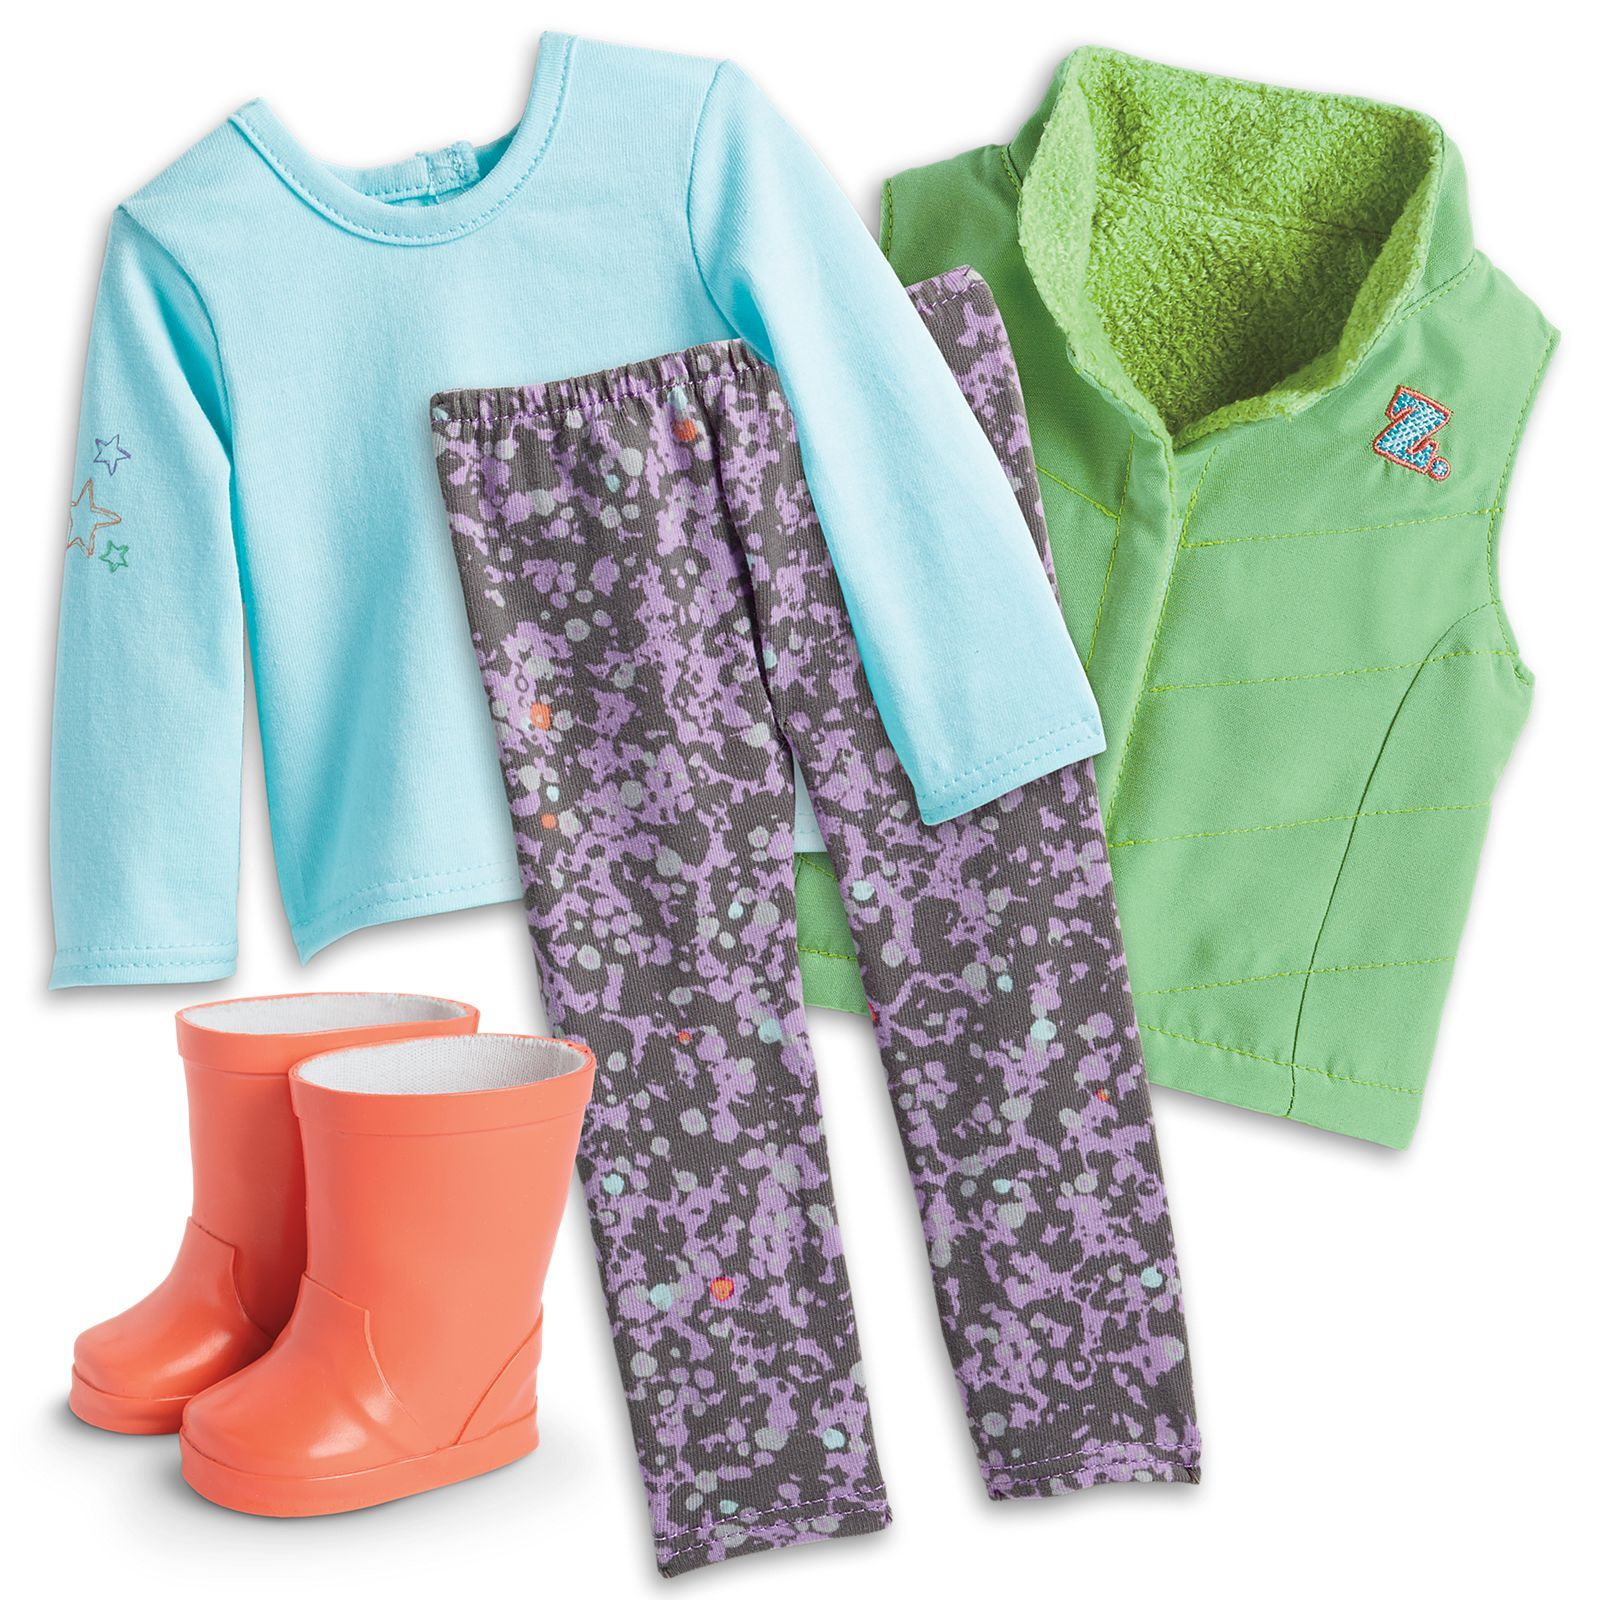 Z\'s Rainy Day Outfit for 18-inch Dolls